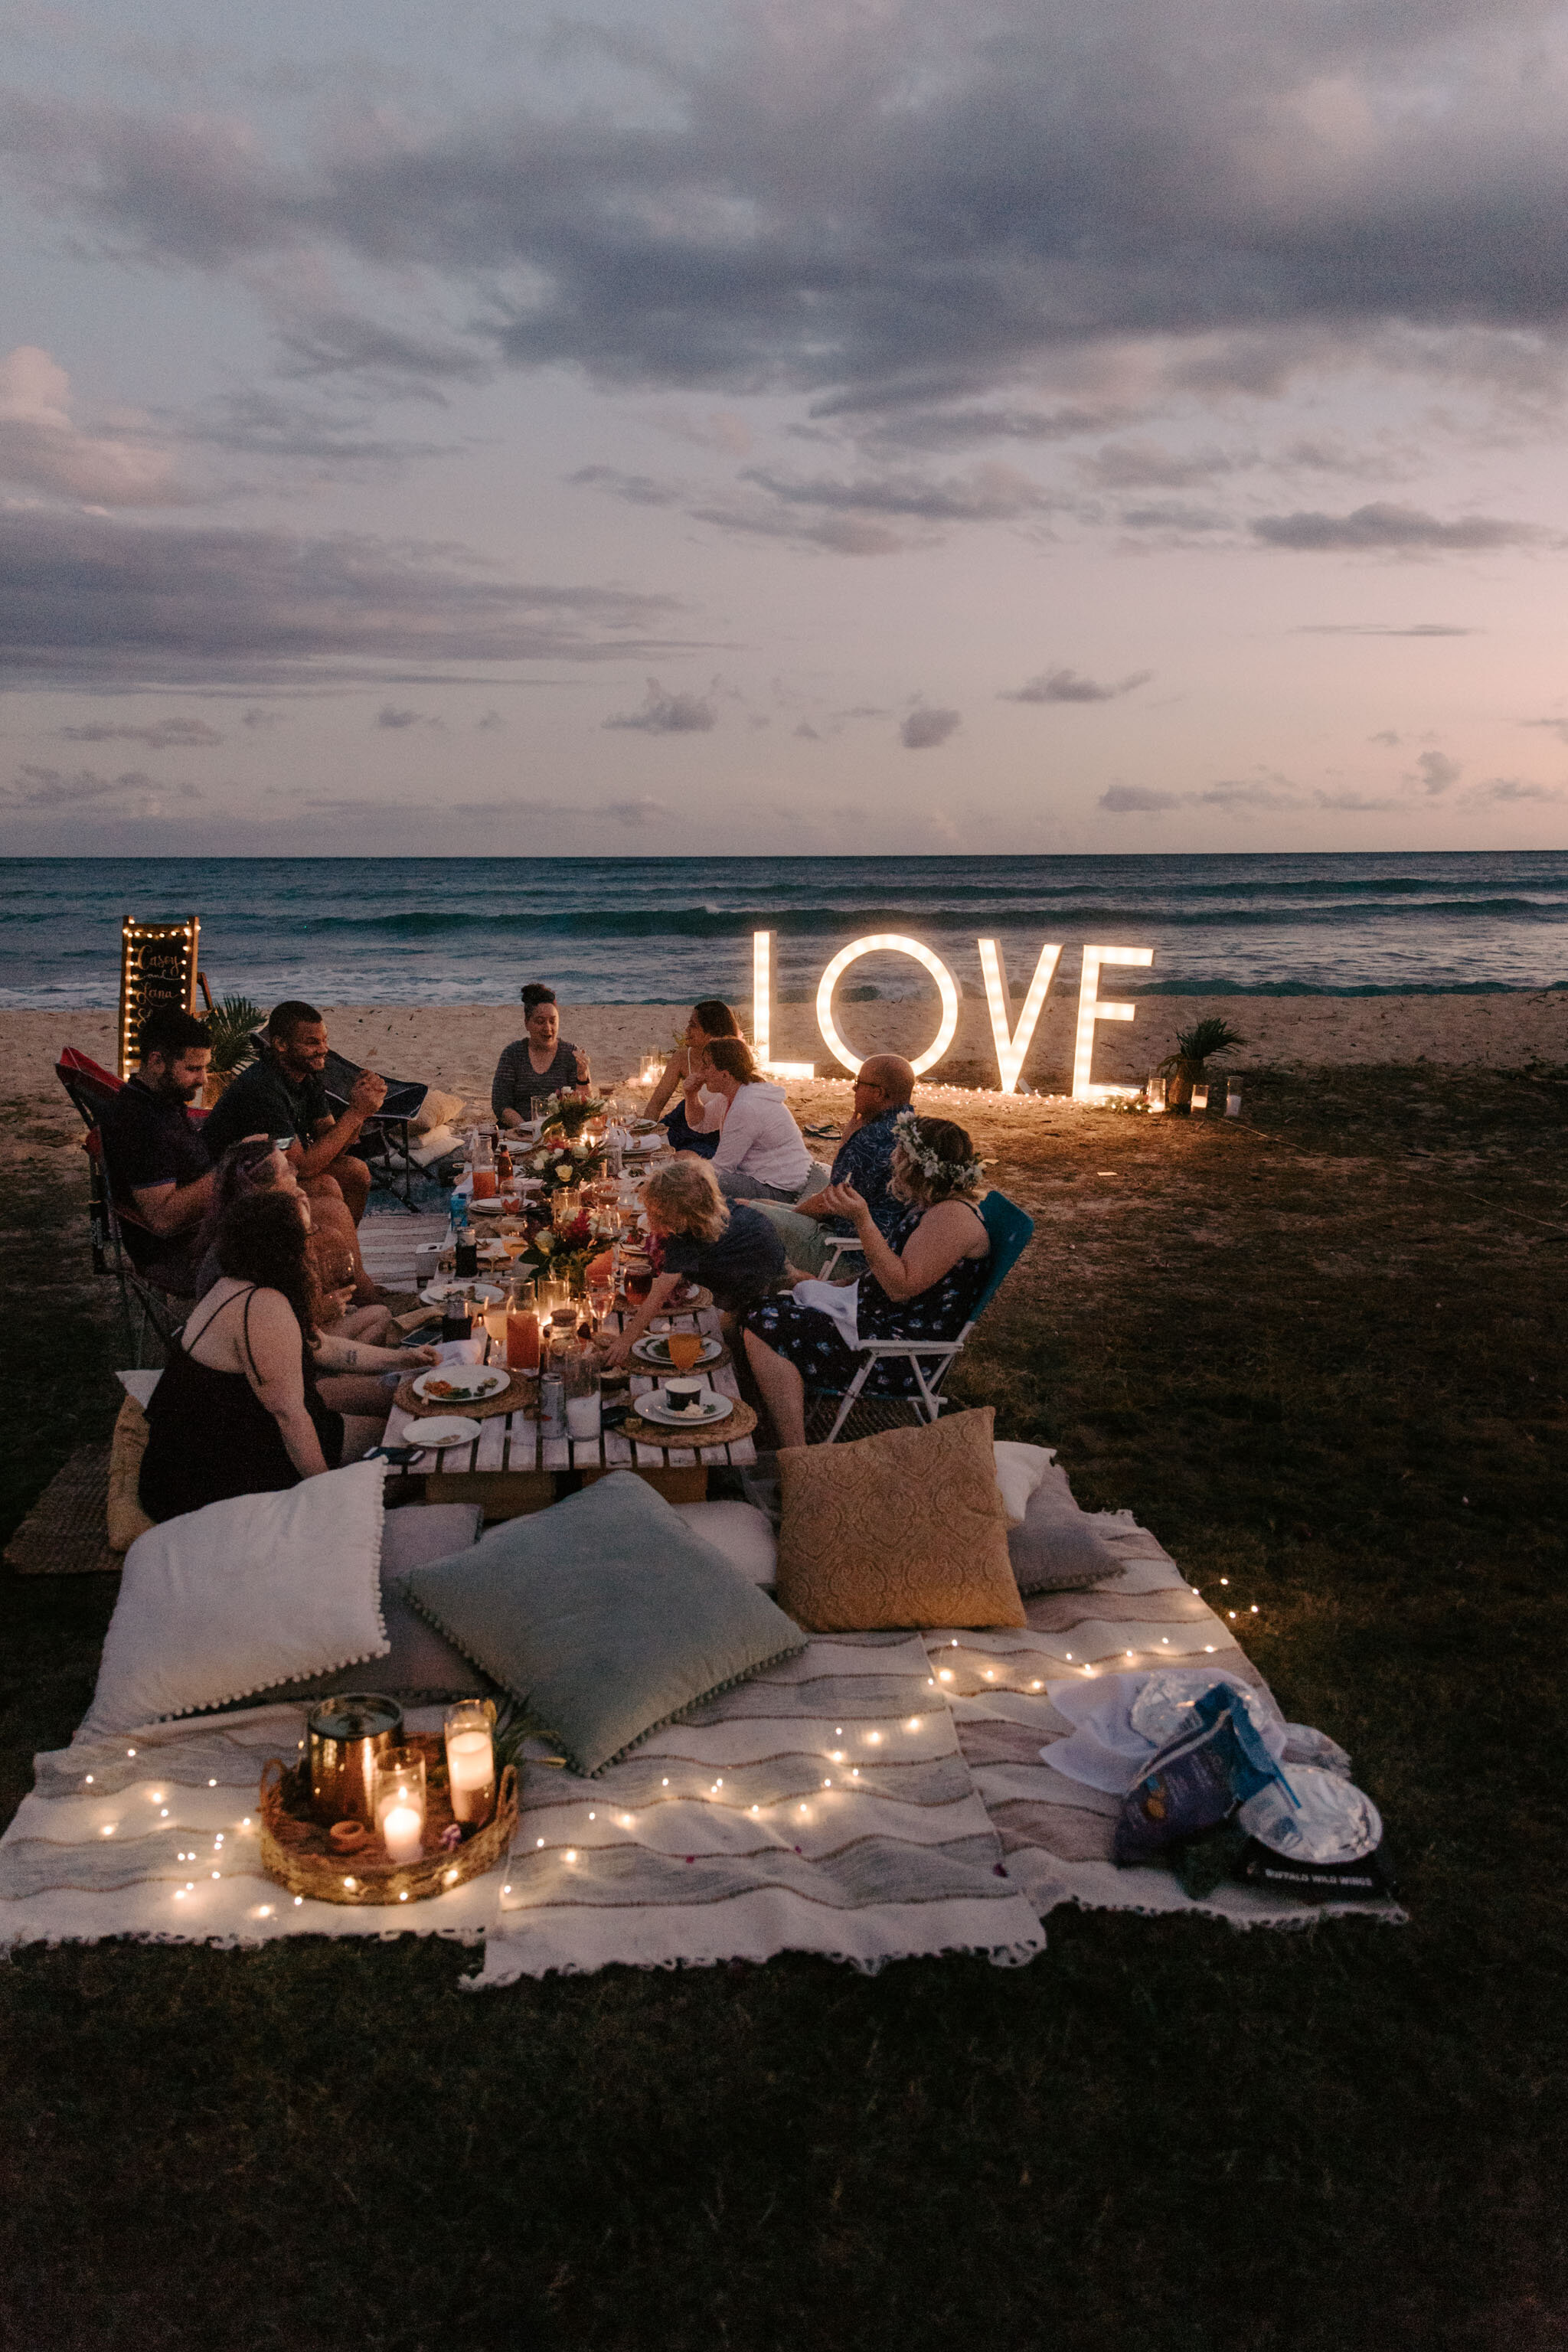 Love wedding sign at night picnic - Aloha Picnics Puuloa Beach Park Hawaii Vow Renewal By Oahu Wedding Photographer Desiree Leilani